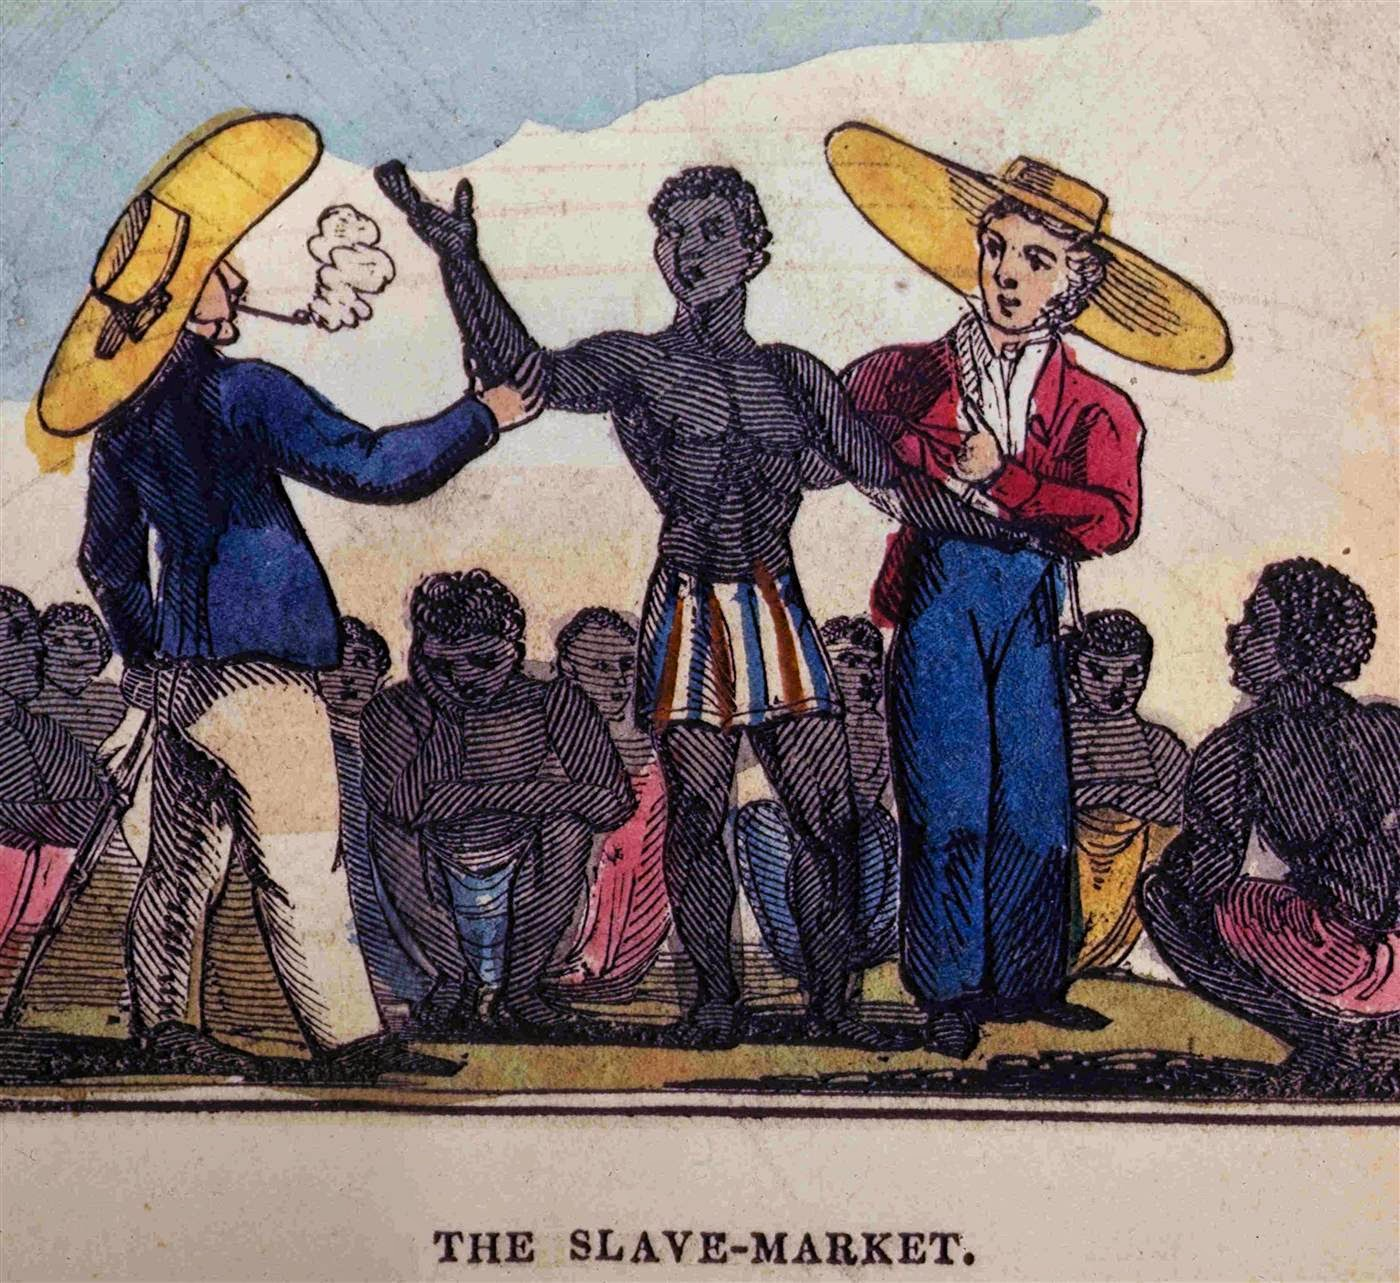 Primary Sources Slavery Abolition And Social Justice